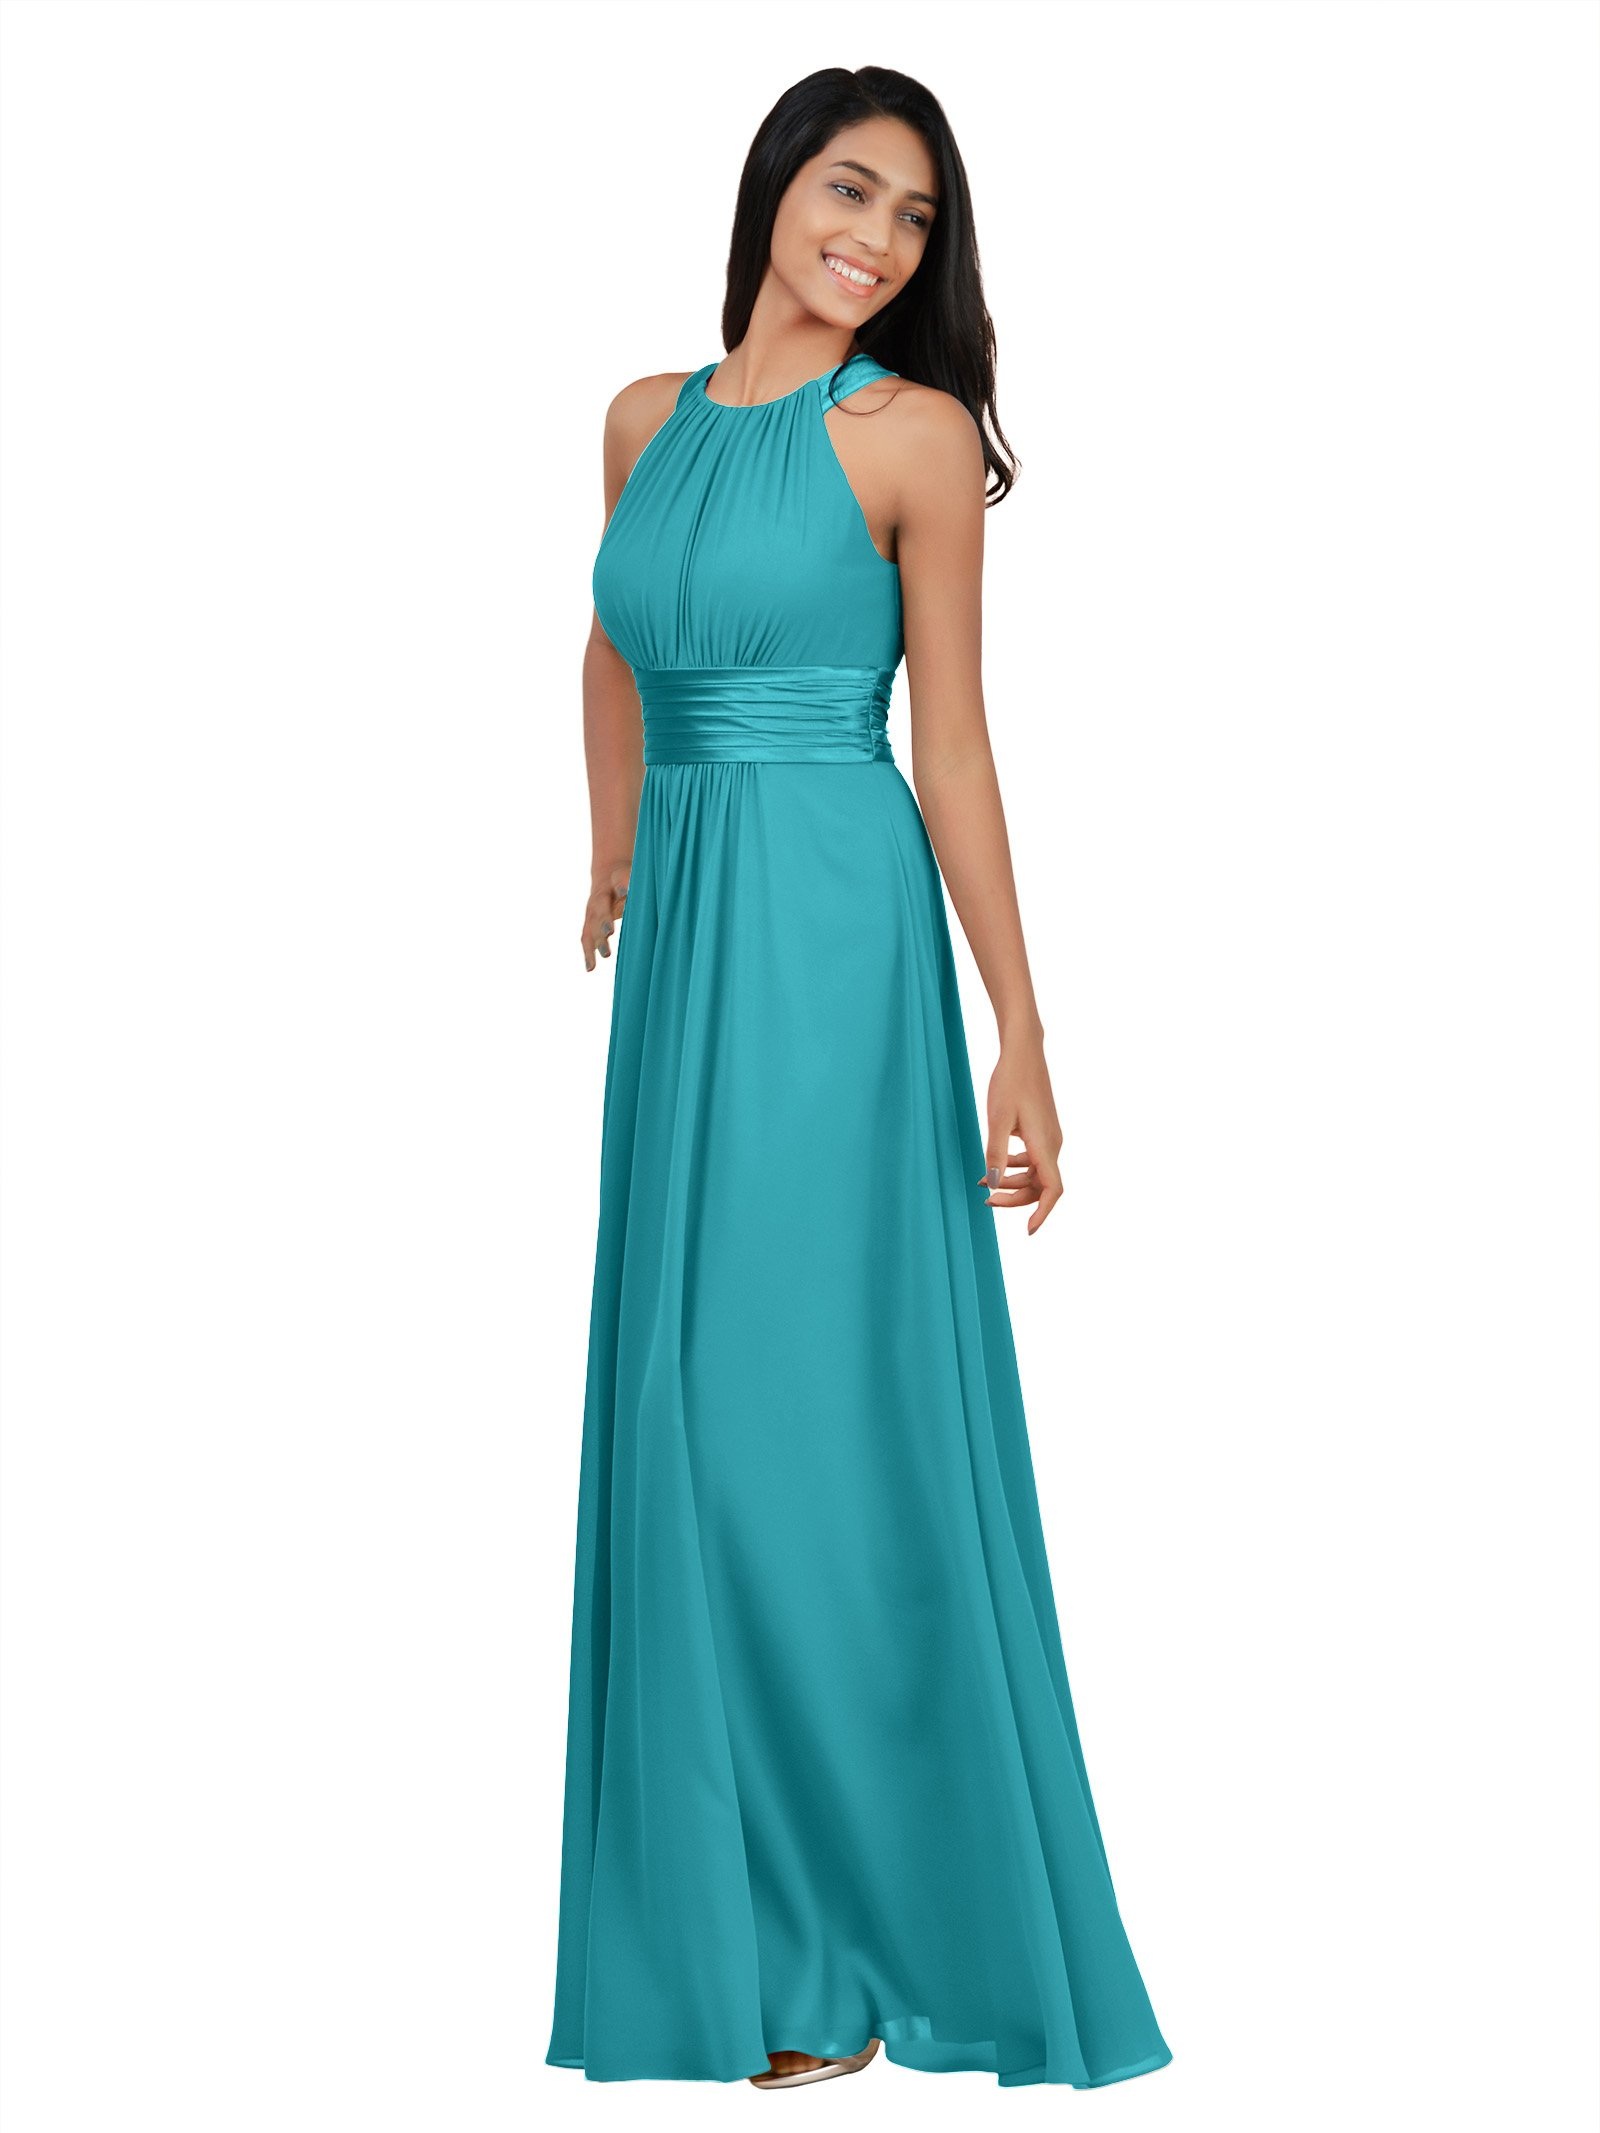 Alicepub Chiffon Plus Size Bridesmaid Dresses Long for Women Formal Evening  Party Prom Gown Halter, Turquoise, US18